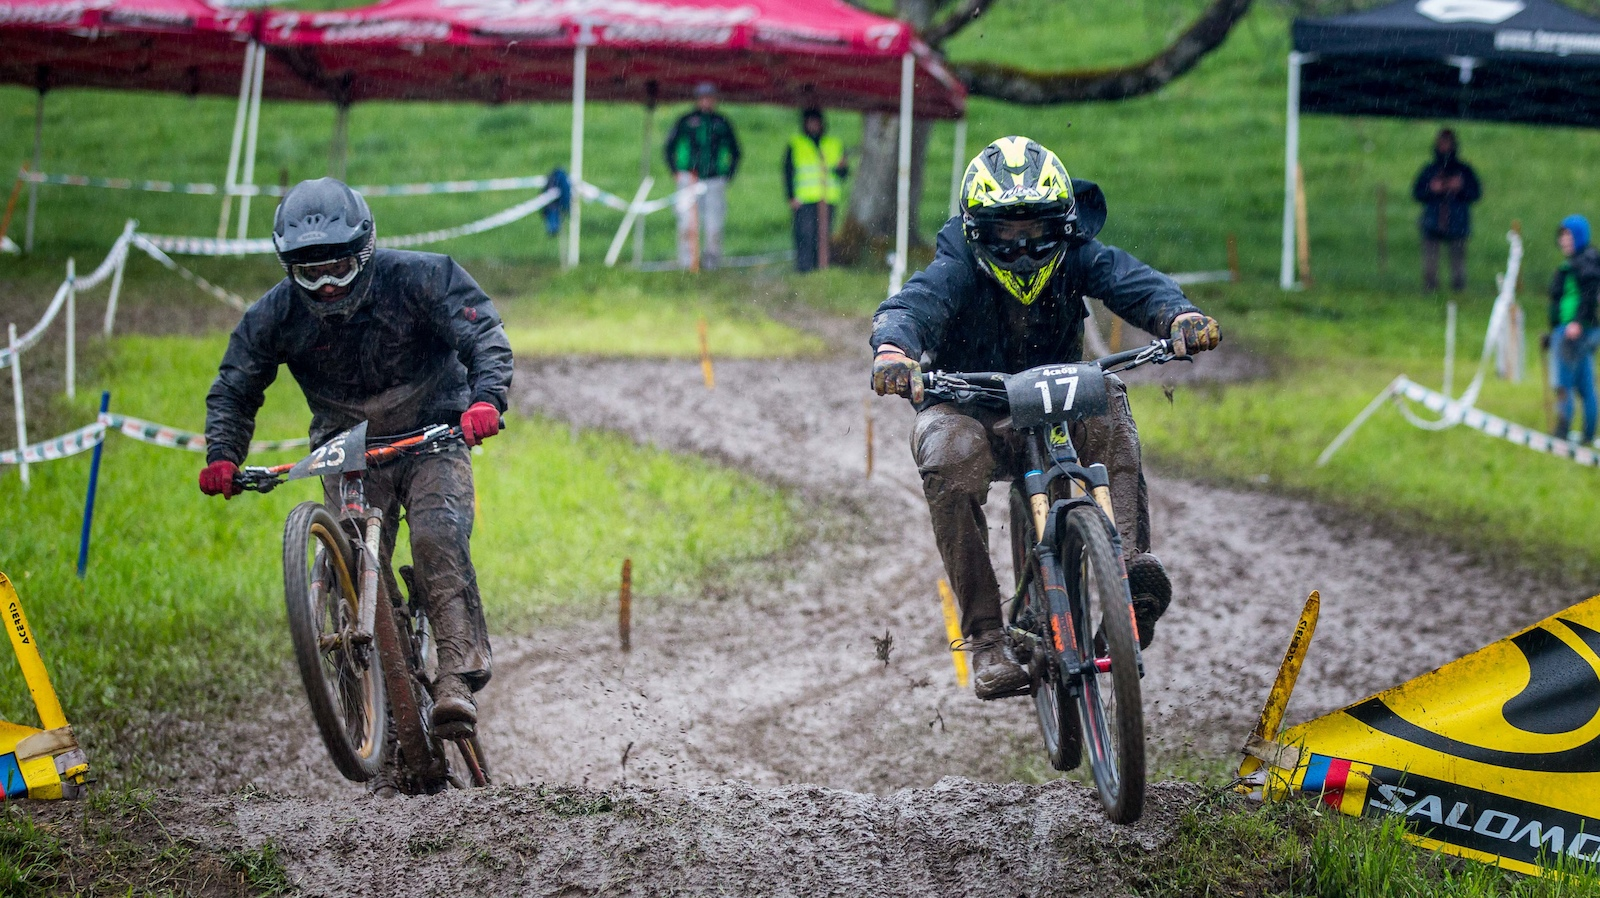 Yanick Silvester Braun VGAS.team HOT-TRAIL RC Steffisburg dominates the elite category through all heats - Photograher Peter Hirzel hipSh0ts at softenvironment.ch